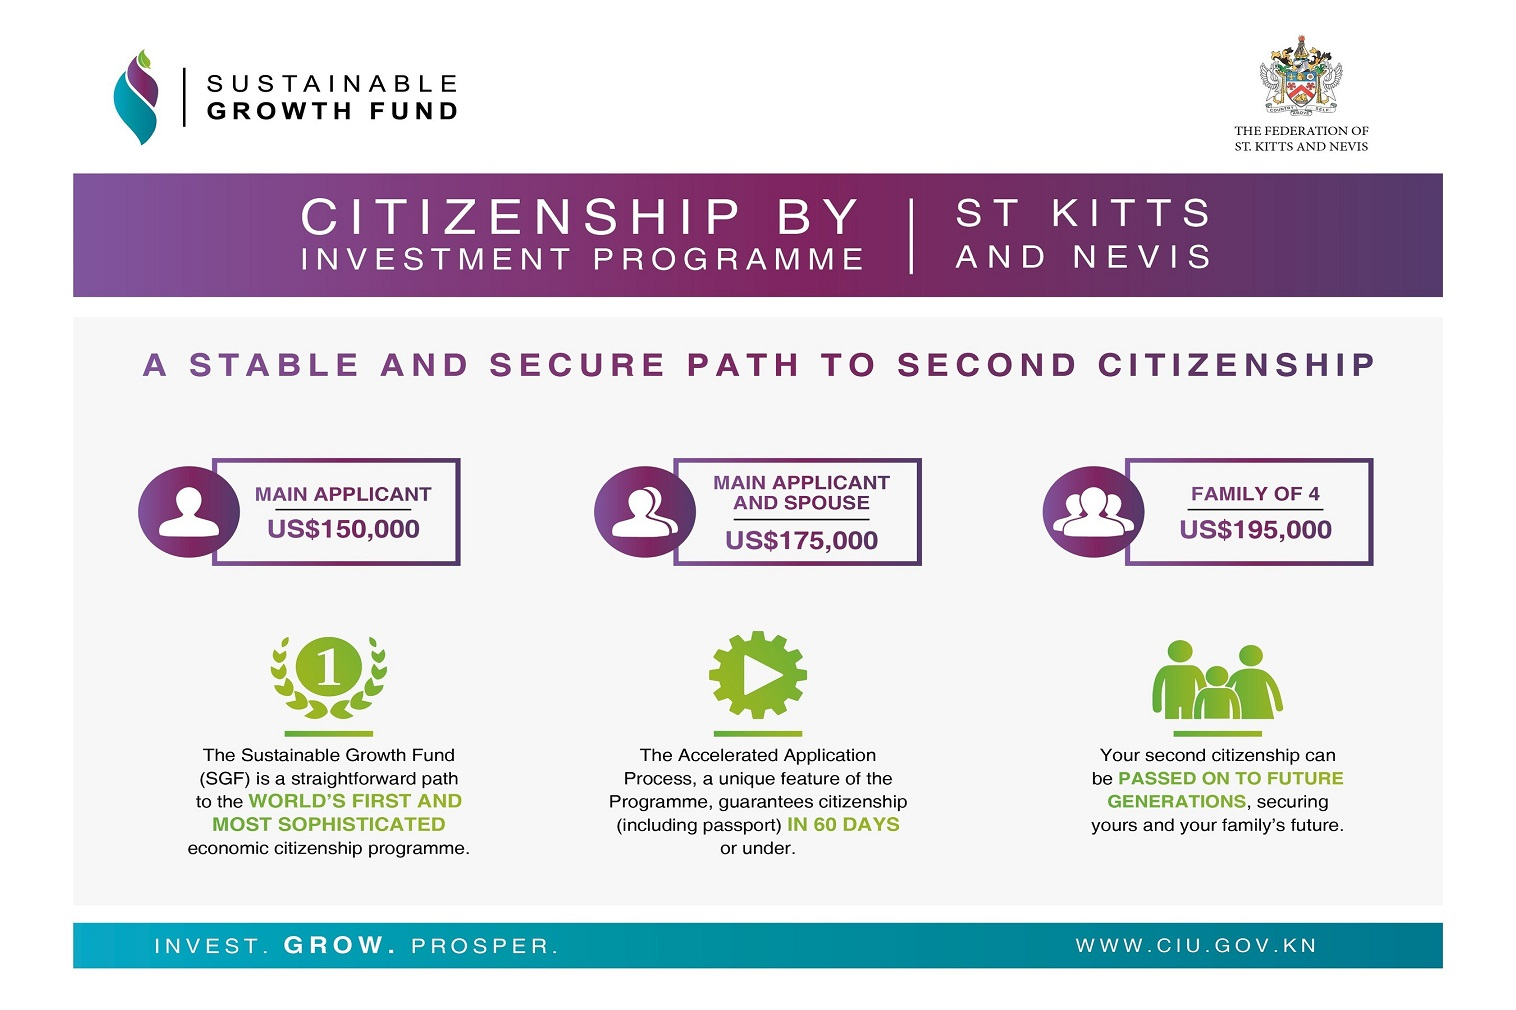 The Federation of St Kitts and Nevis provides an expedited route for carefully vetted individuals from around the world to obtain second citizenship, in exchange for a minimum US$150,000 contribution to the Sustainable Growth Fund (SGF).